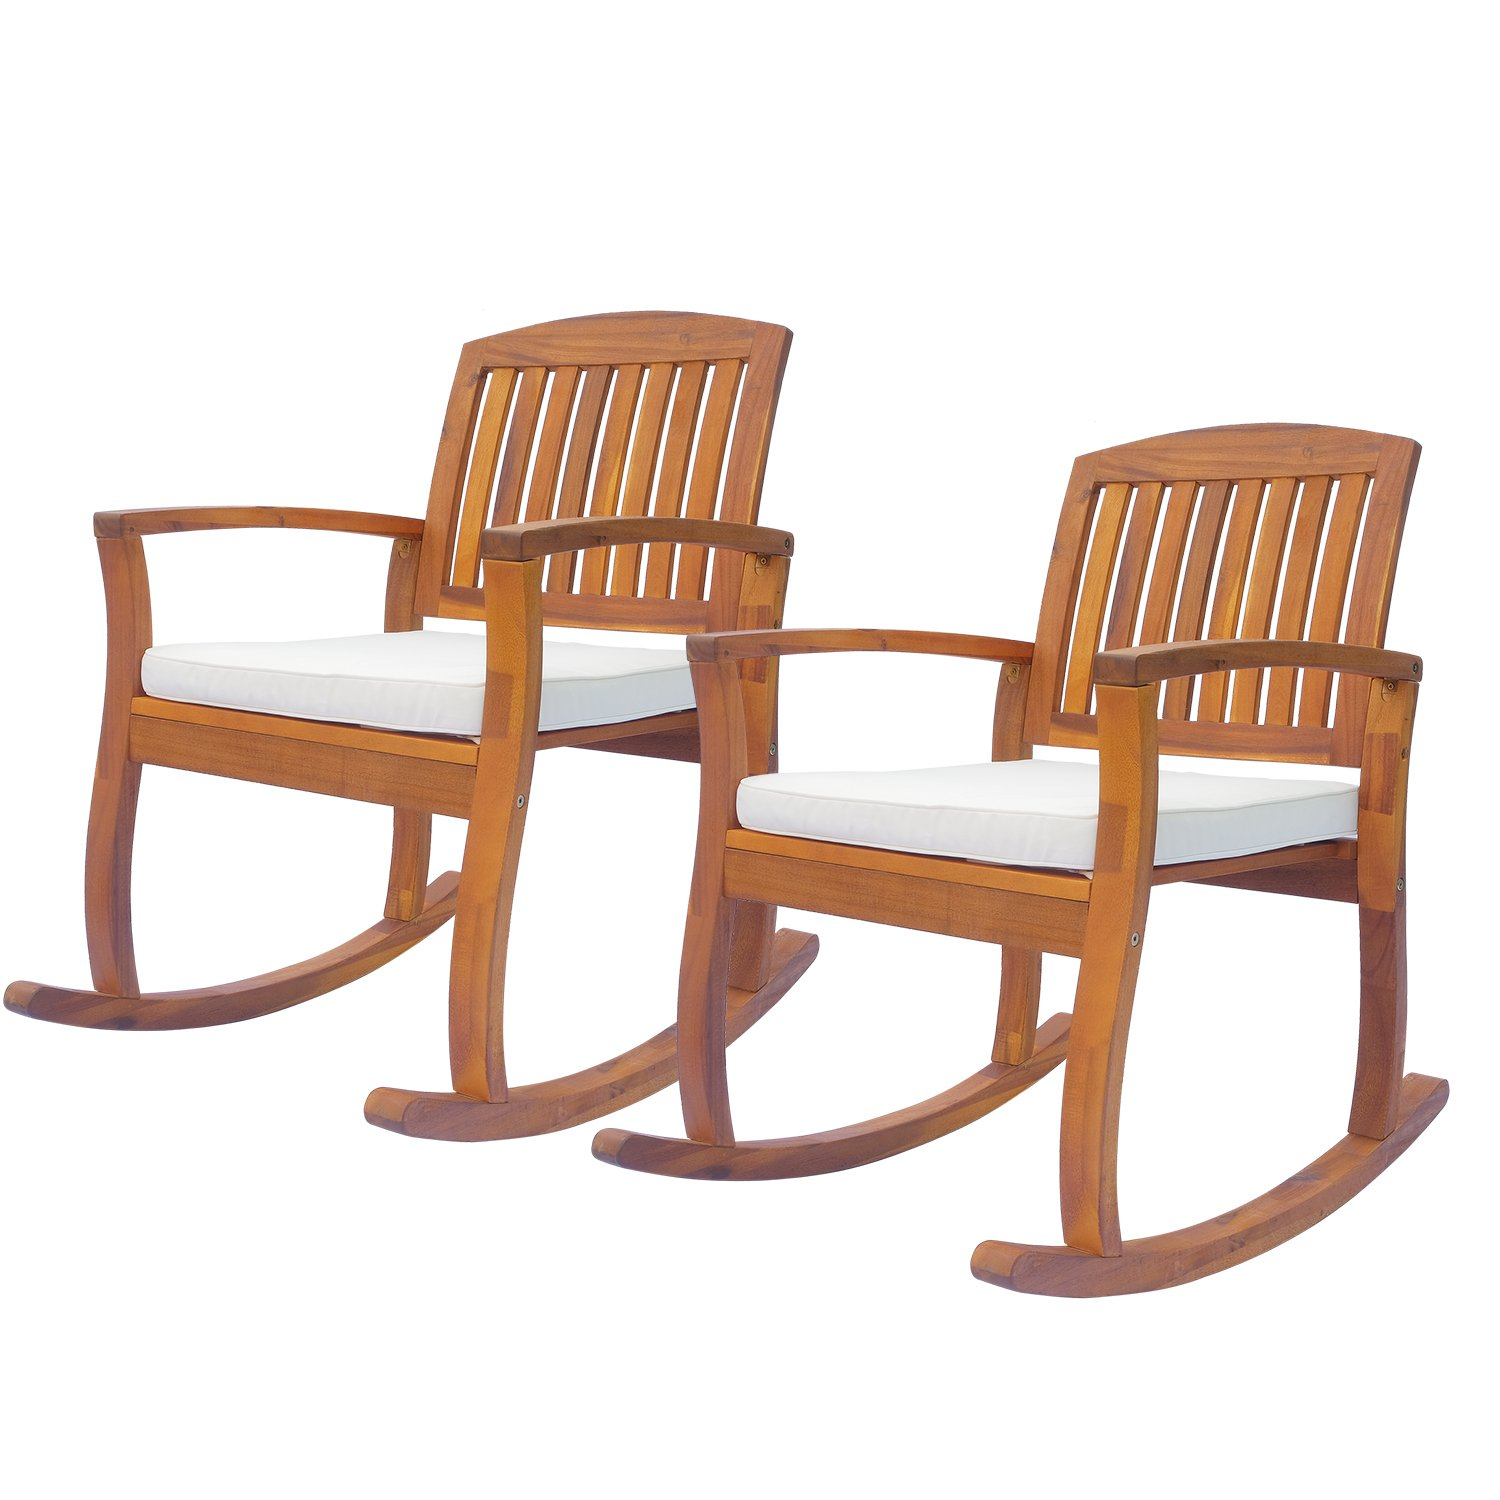 Outsunny Acacia Wood Outdoor Rocking Chair with Cushioned Seat 2pc